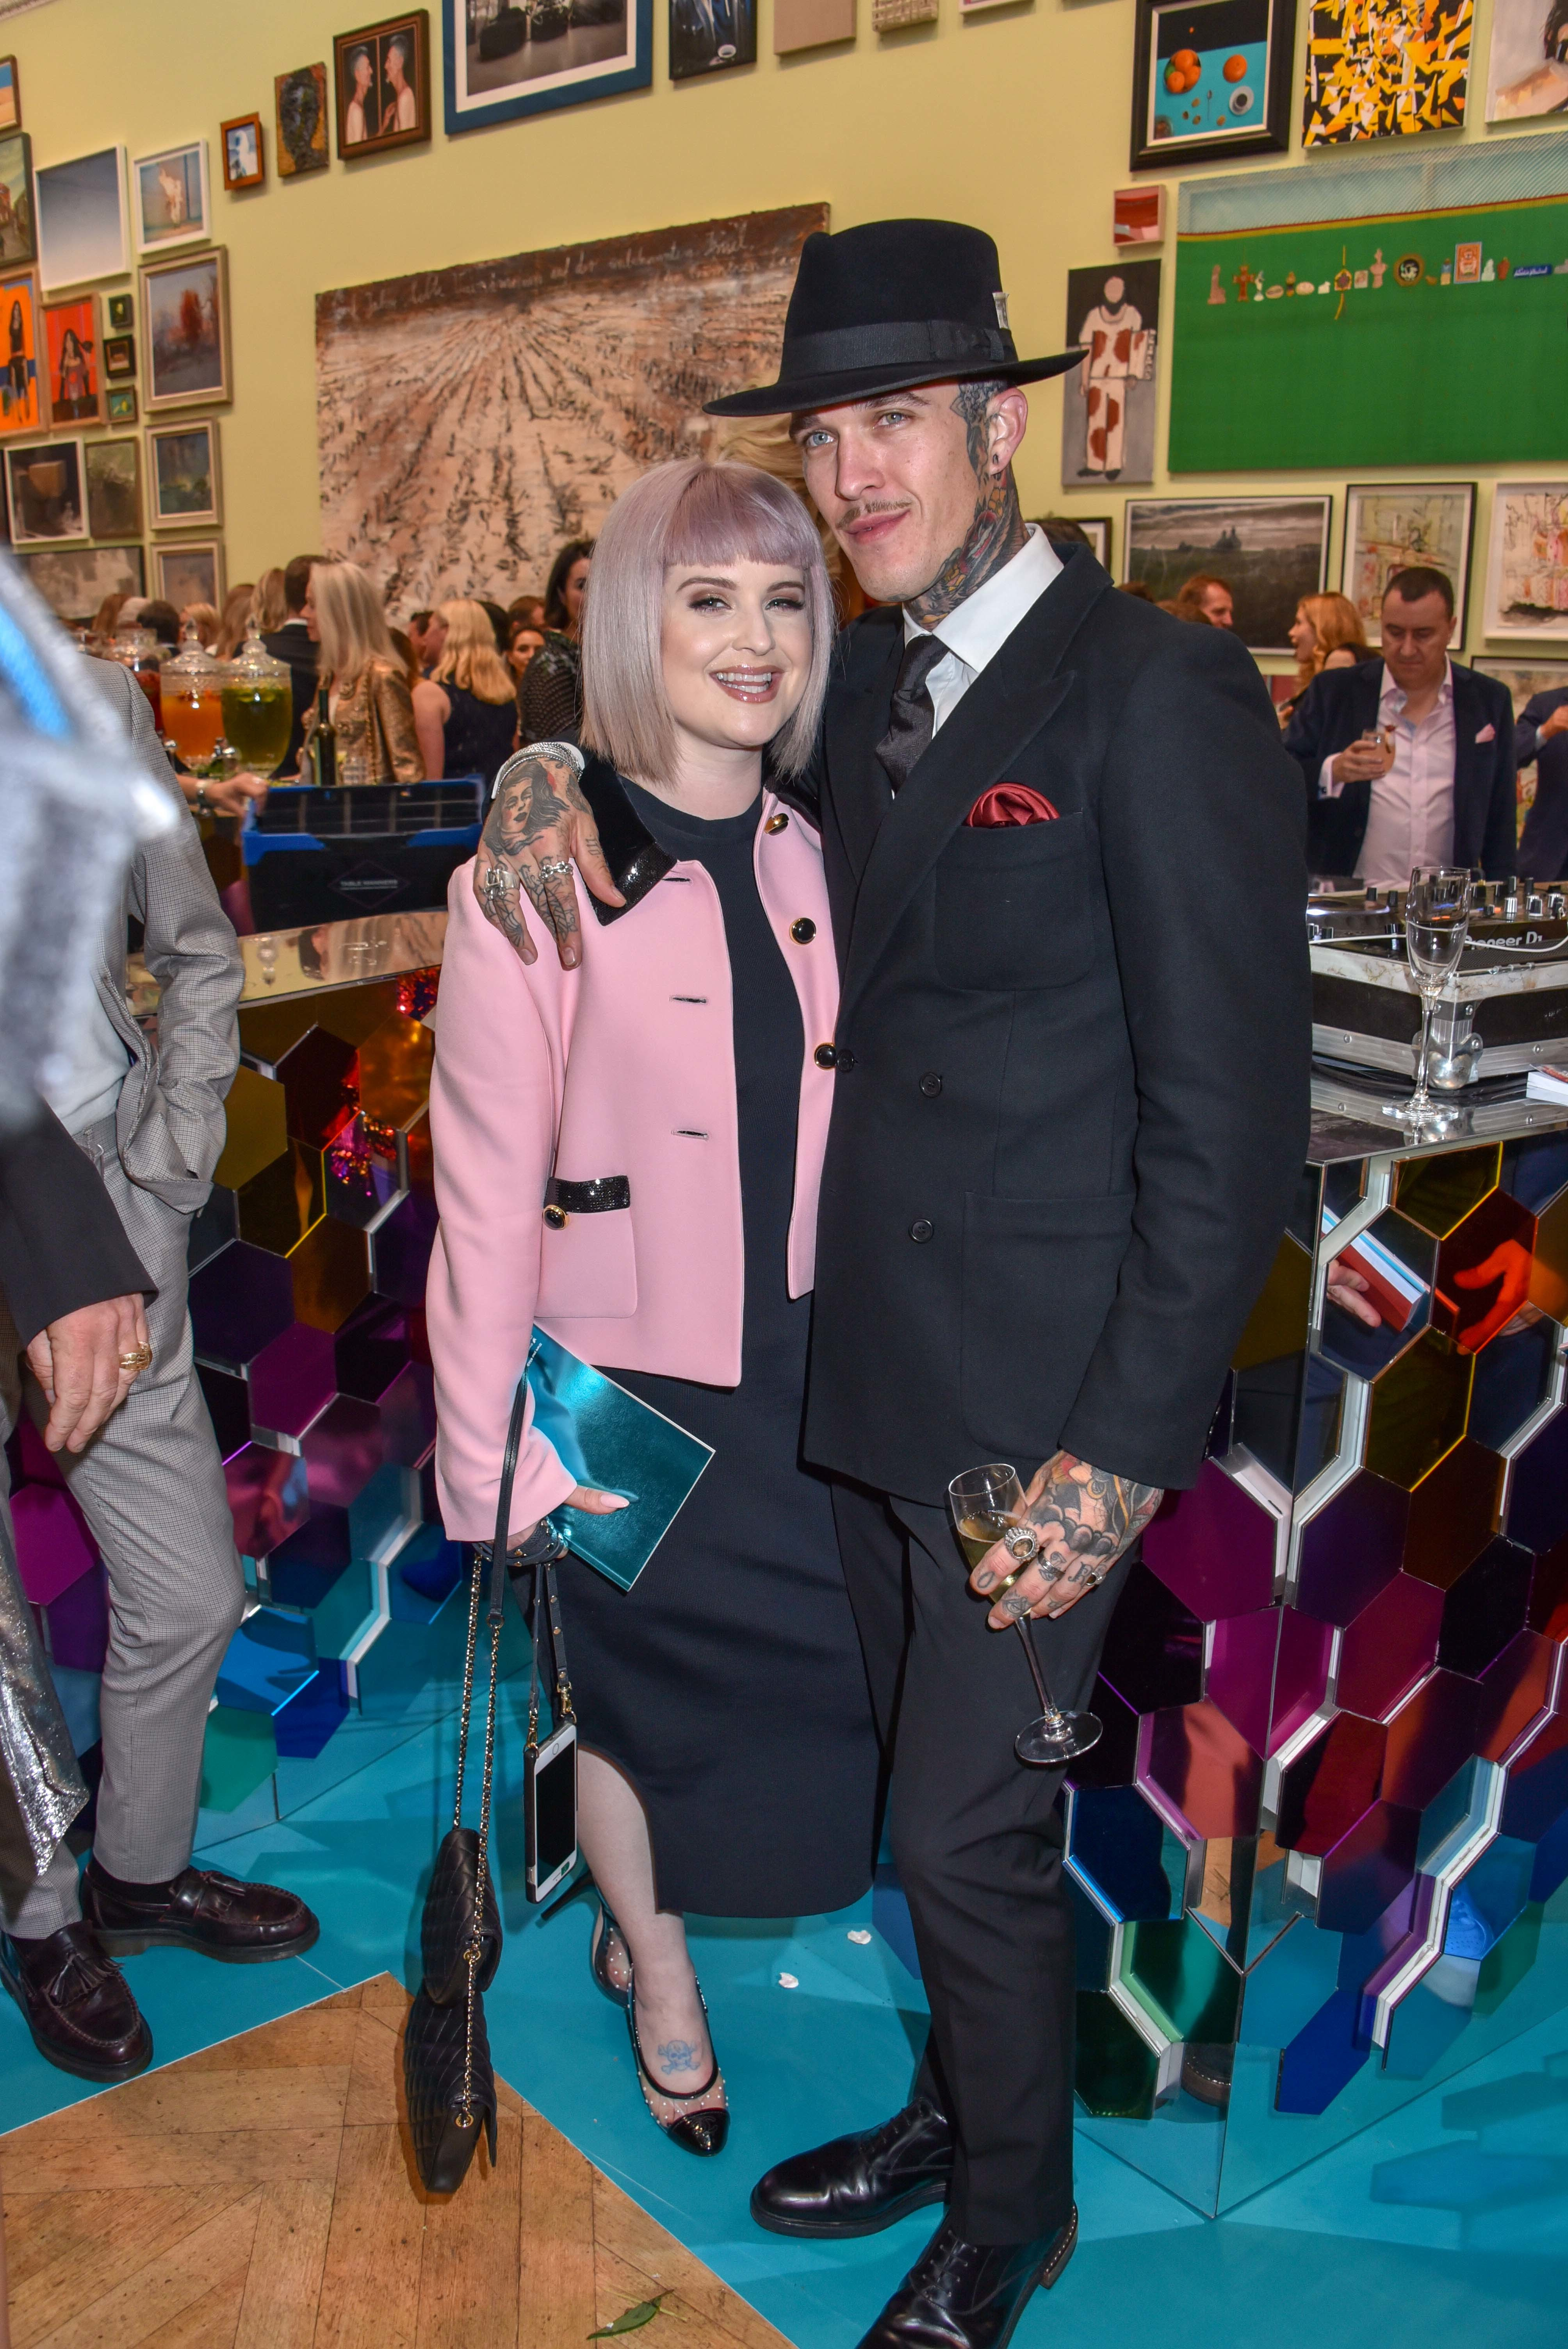 Kelly Osbourne and Jimmy Q attend the Royal Academy of Arts Summer Exhibition preview party in London on June 4, 2019.